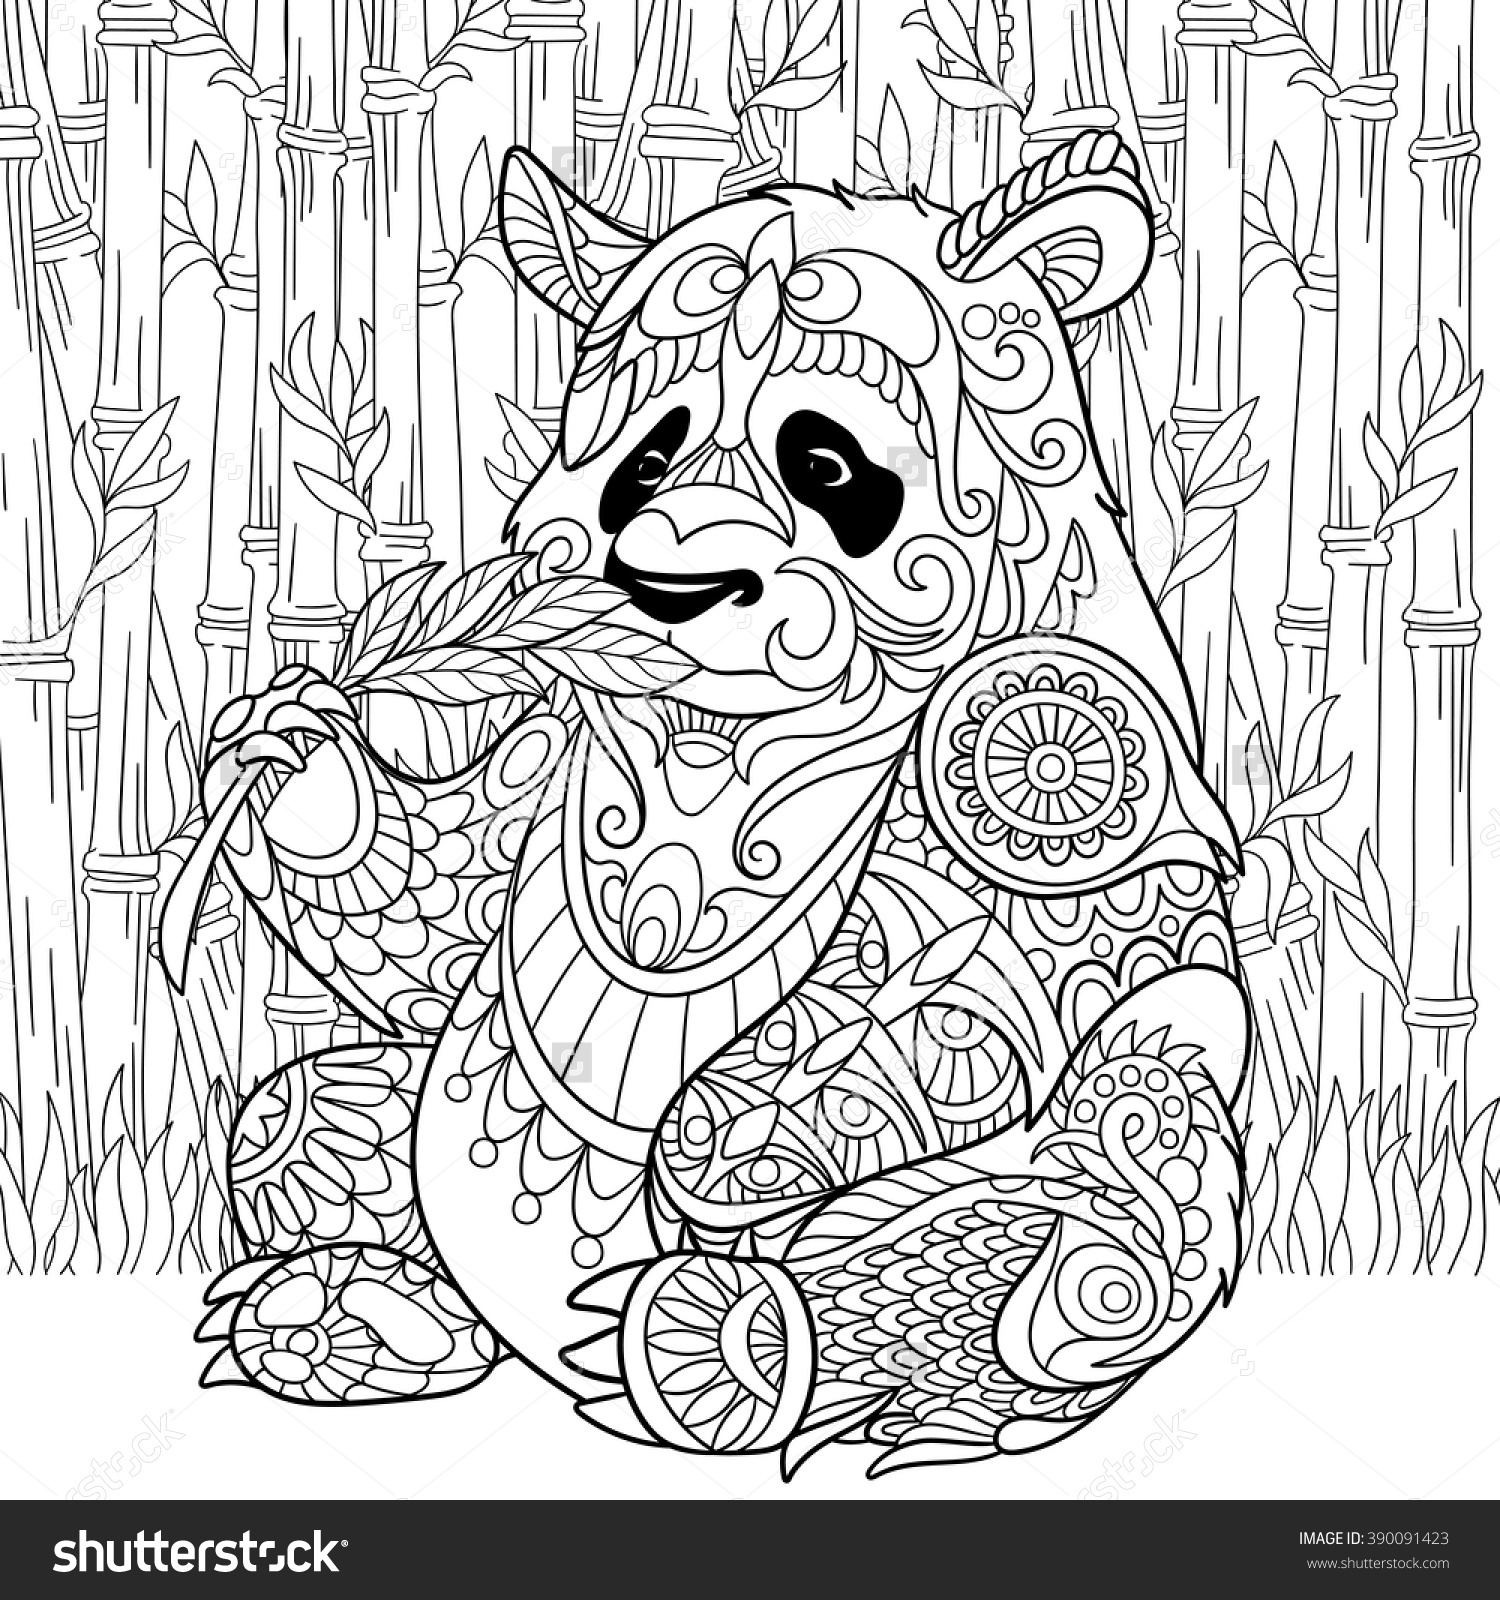 1500x1600 Luxury Zentangle Stylized Cartoon Panda Sitting Among Bamboo Stems